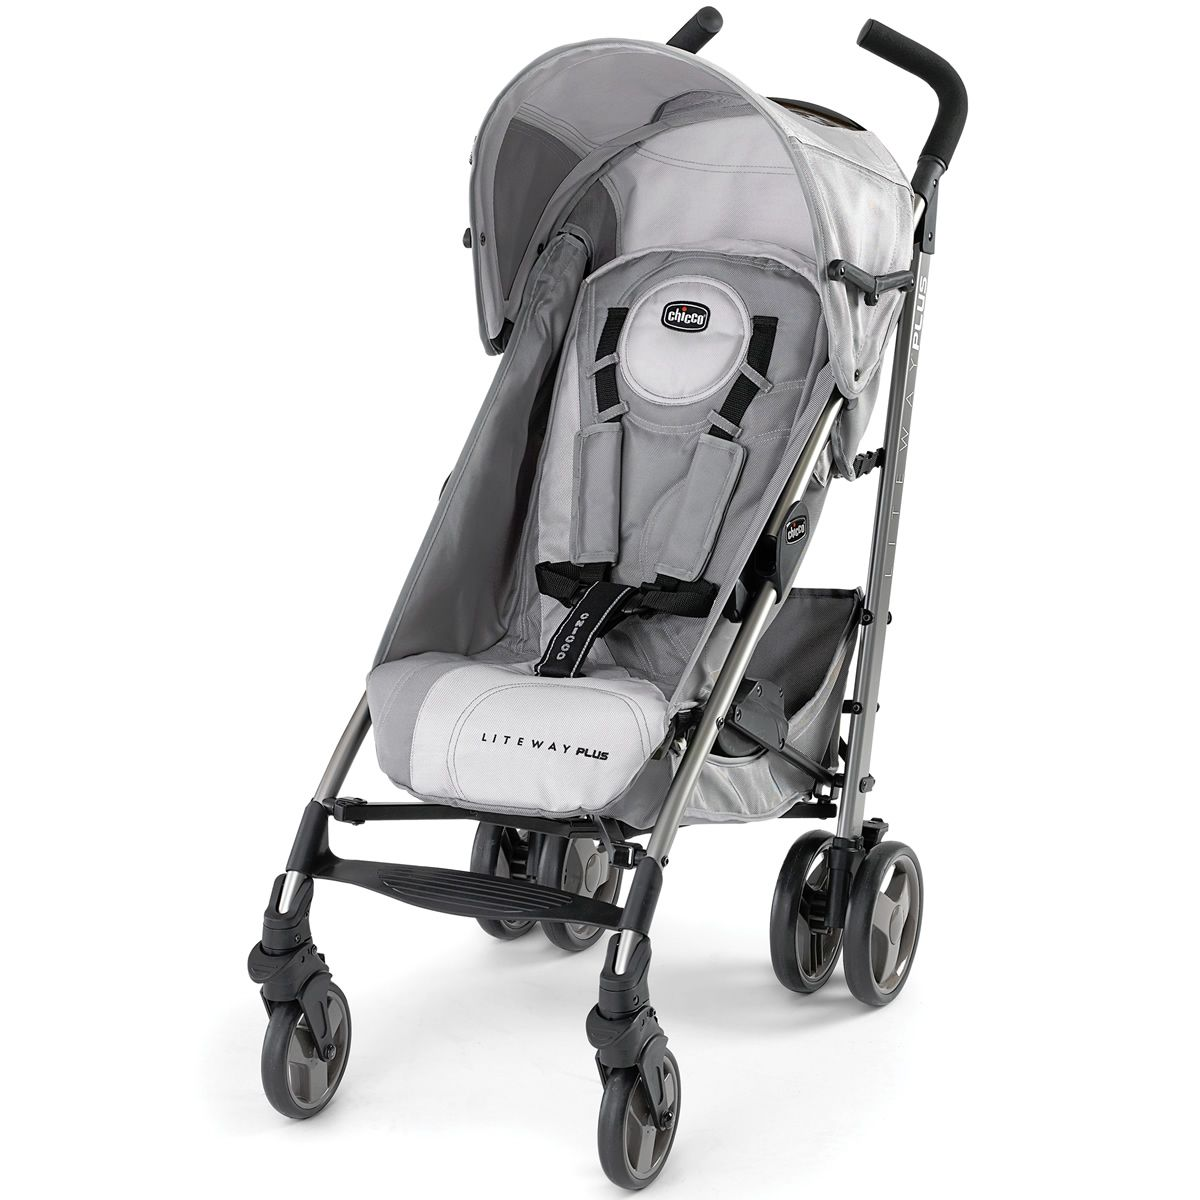 Chicco Liteway Plus Stroller Silver Carritos de bebé